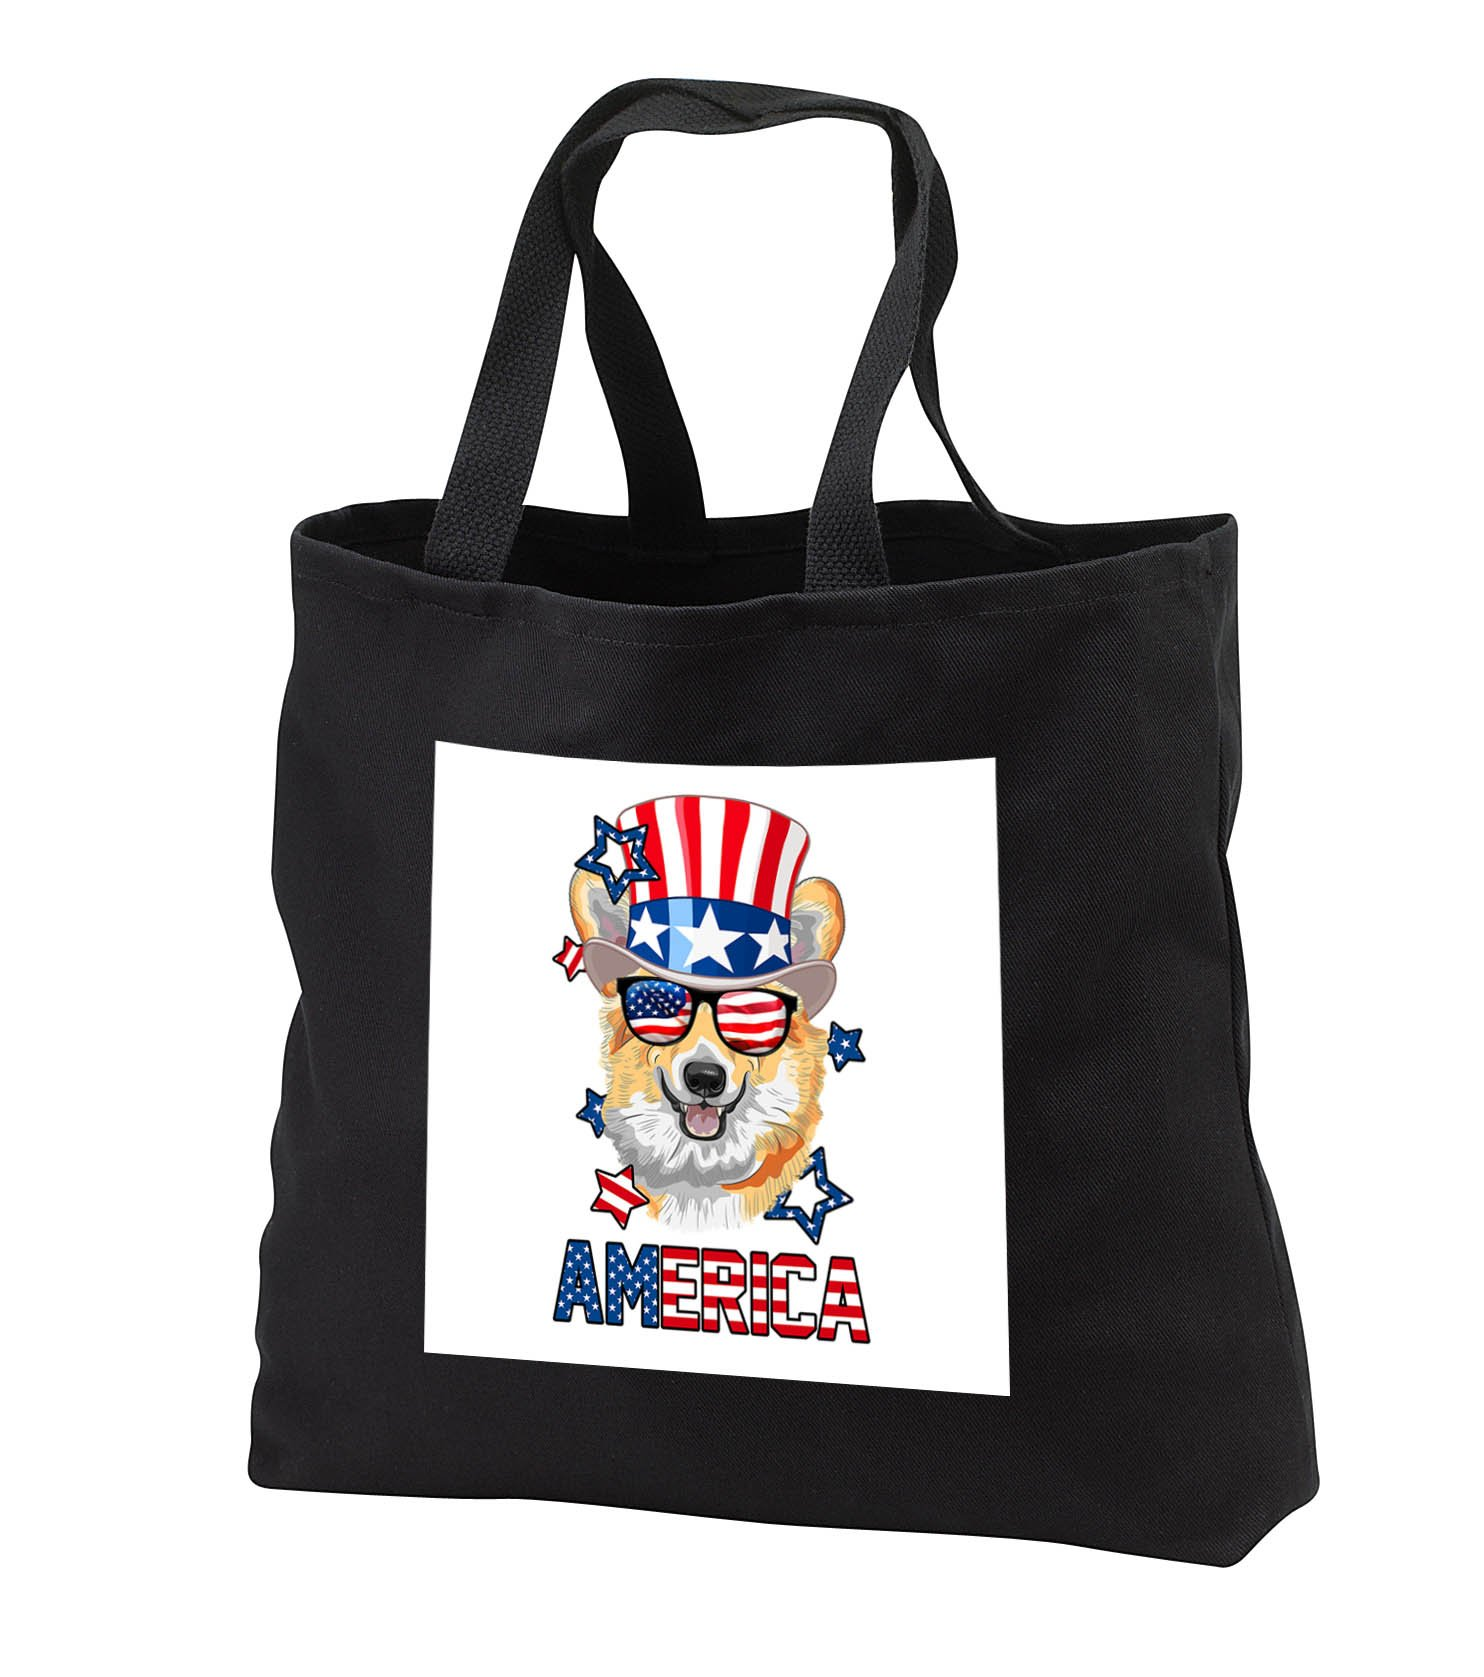 Patriotic American Dogs - Corgi With American Flag Sunglasses and Tophat Dog America - Tote Bags - Black Tote Bag 14w x 14h x 3d (tb_284222_1)